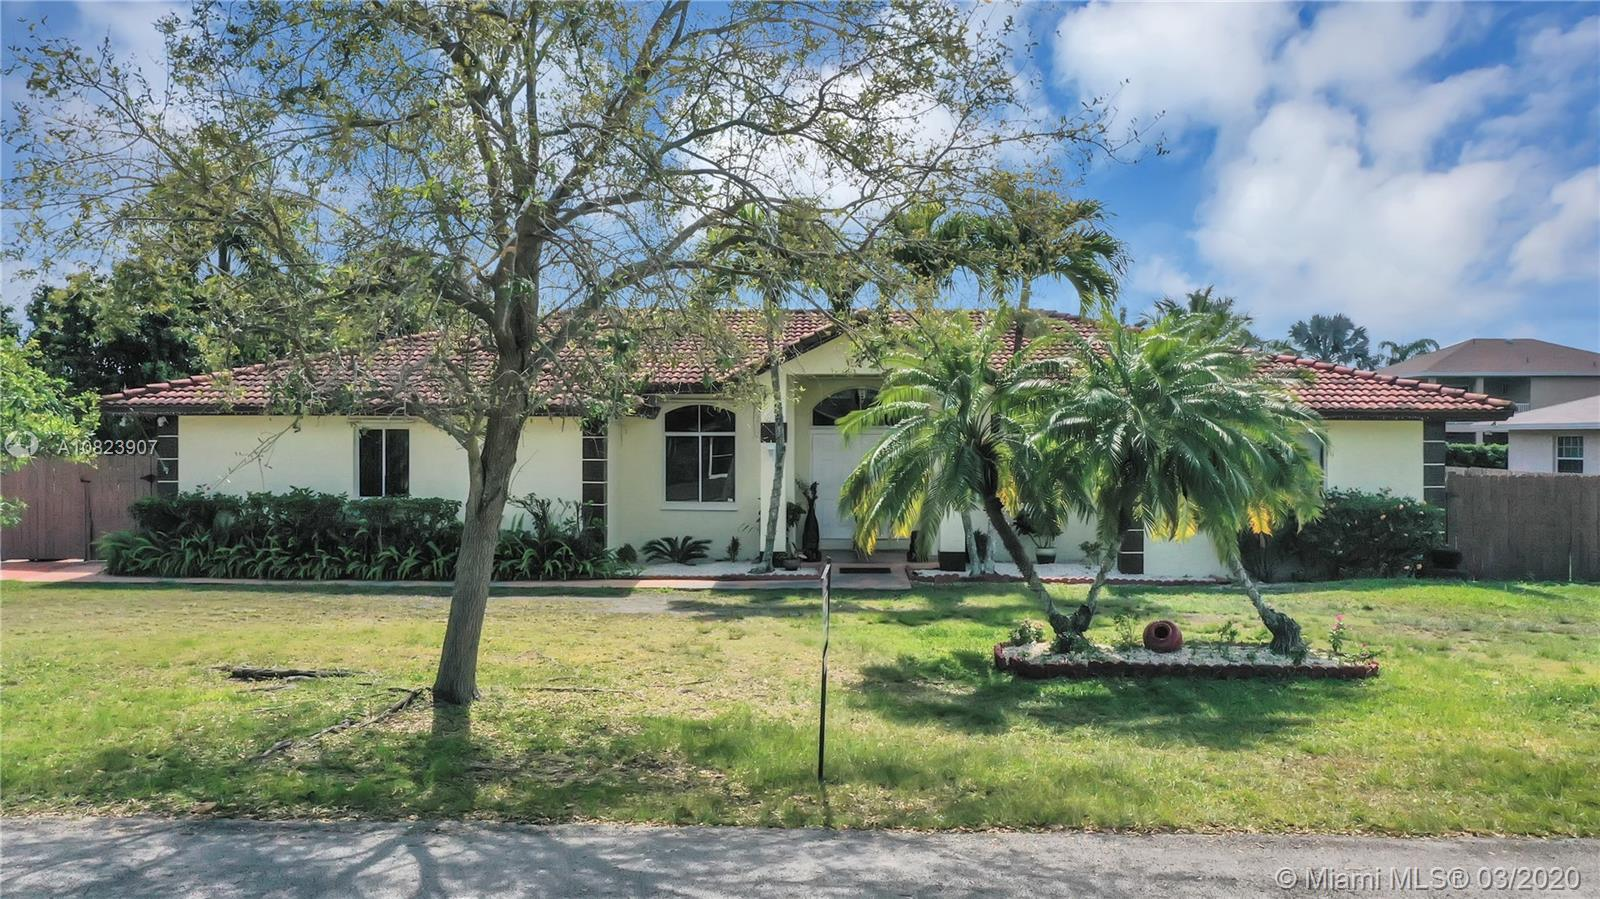 16720 SW 278th St, Homestead, FL 33031 - Homestead, FL real estate listing